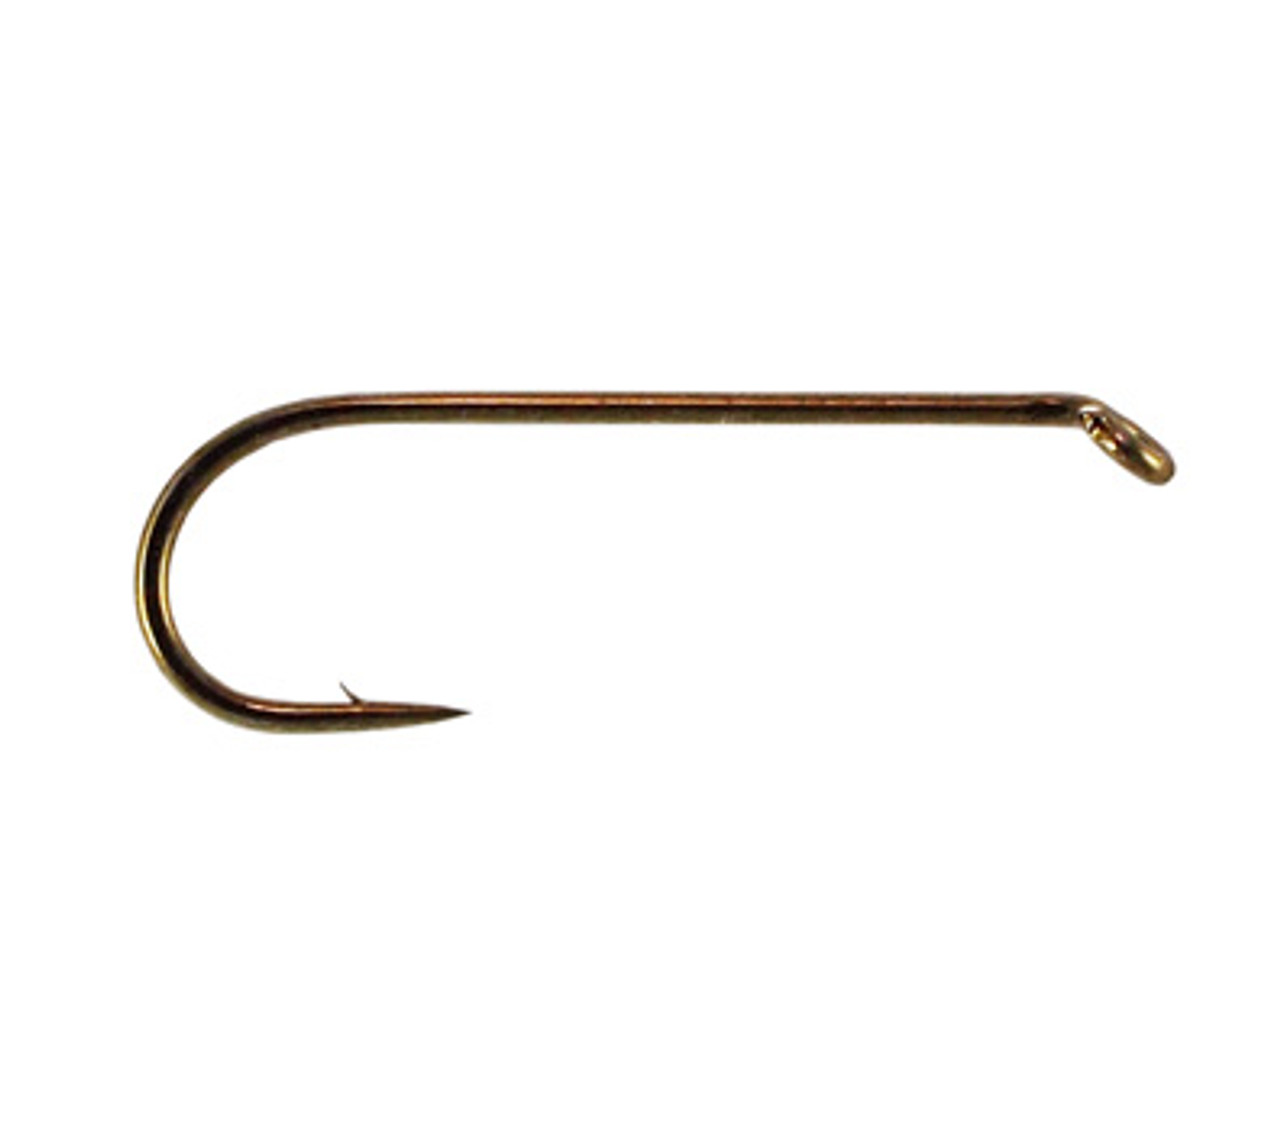 Size 8-25 Pack Montana Fly Company 2XL Heavy Wire Hook 7026